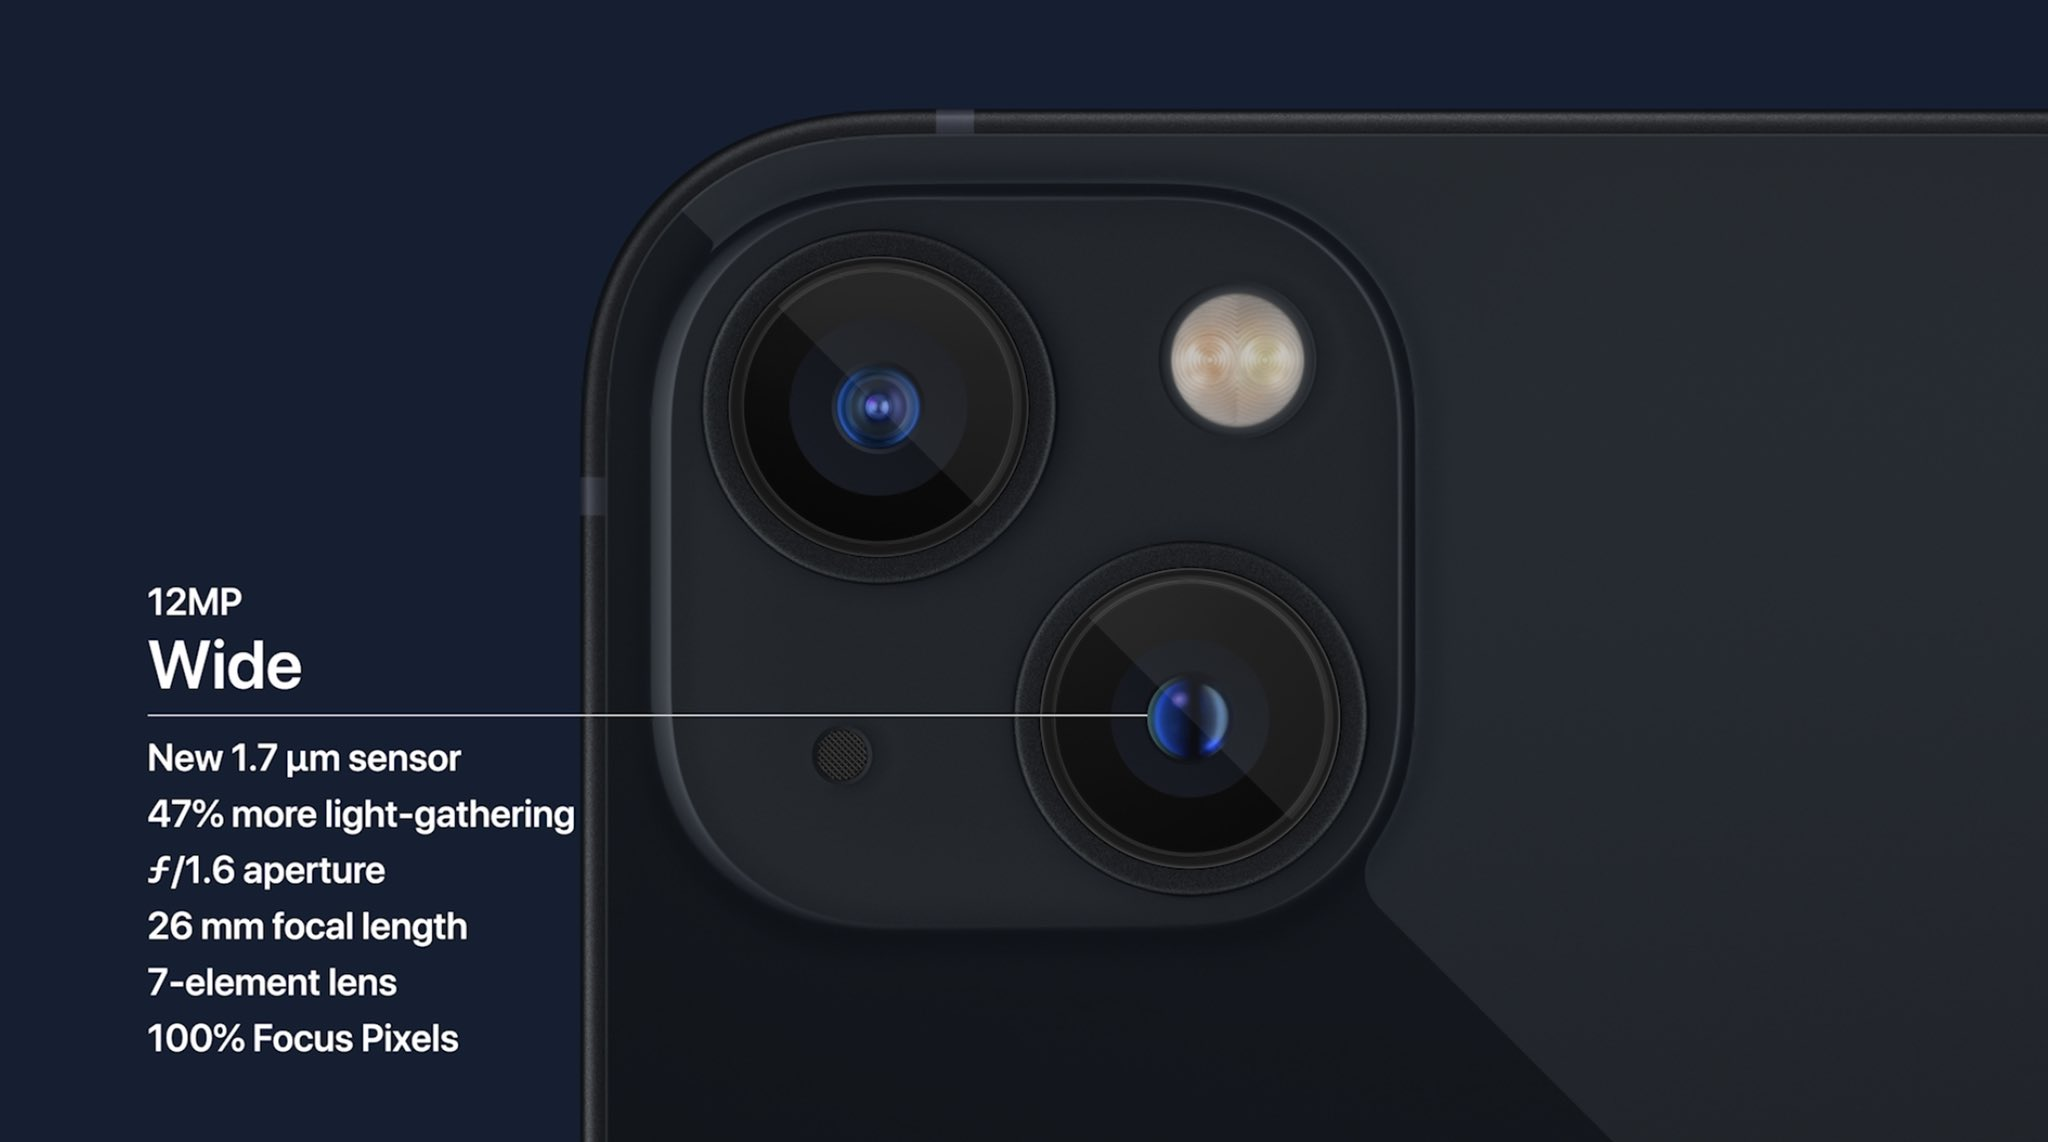 E Q39SuWQAACJEs?format=jpg&name=large - Apple announces iPhone 13 with a smaller notch